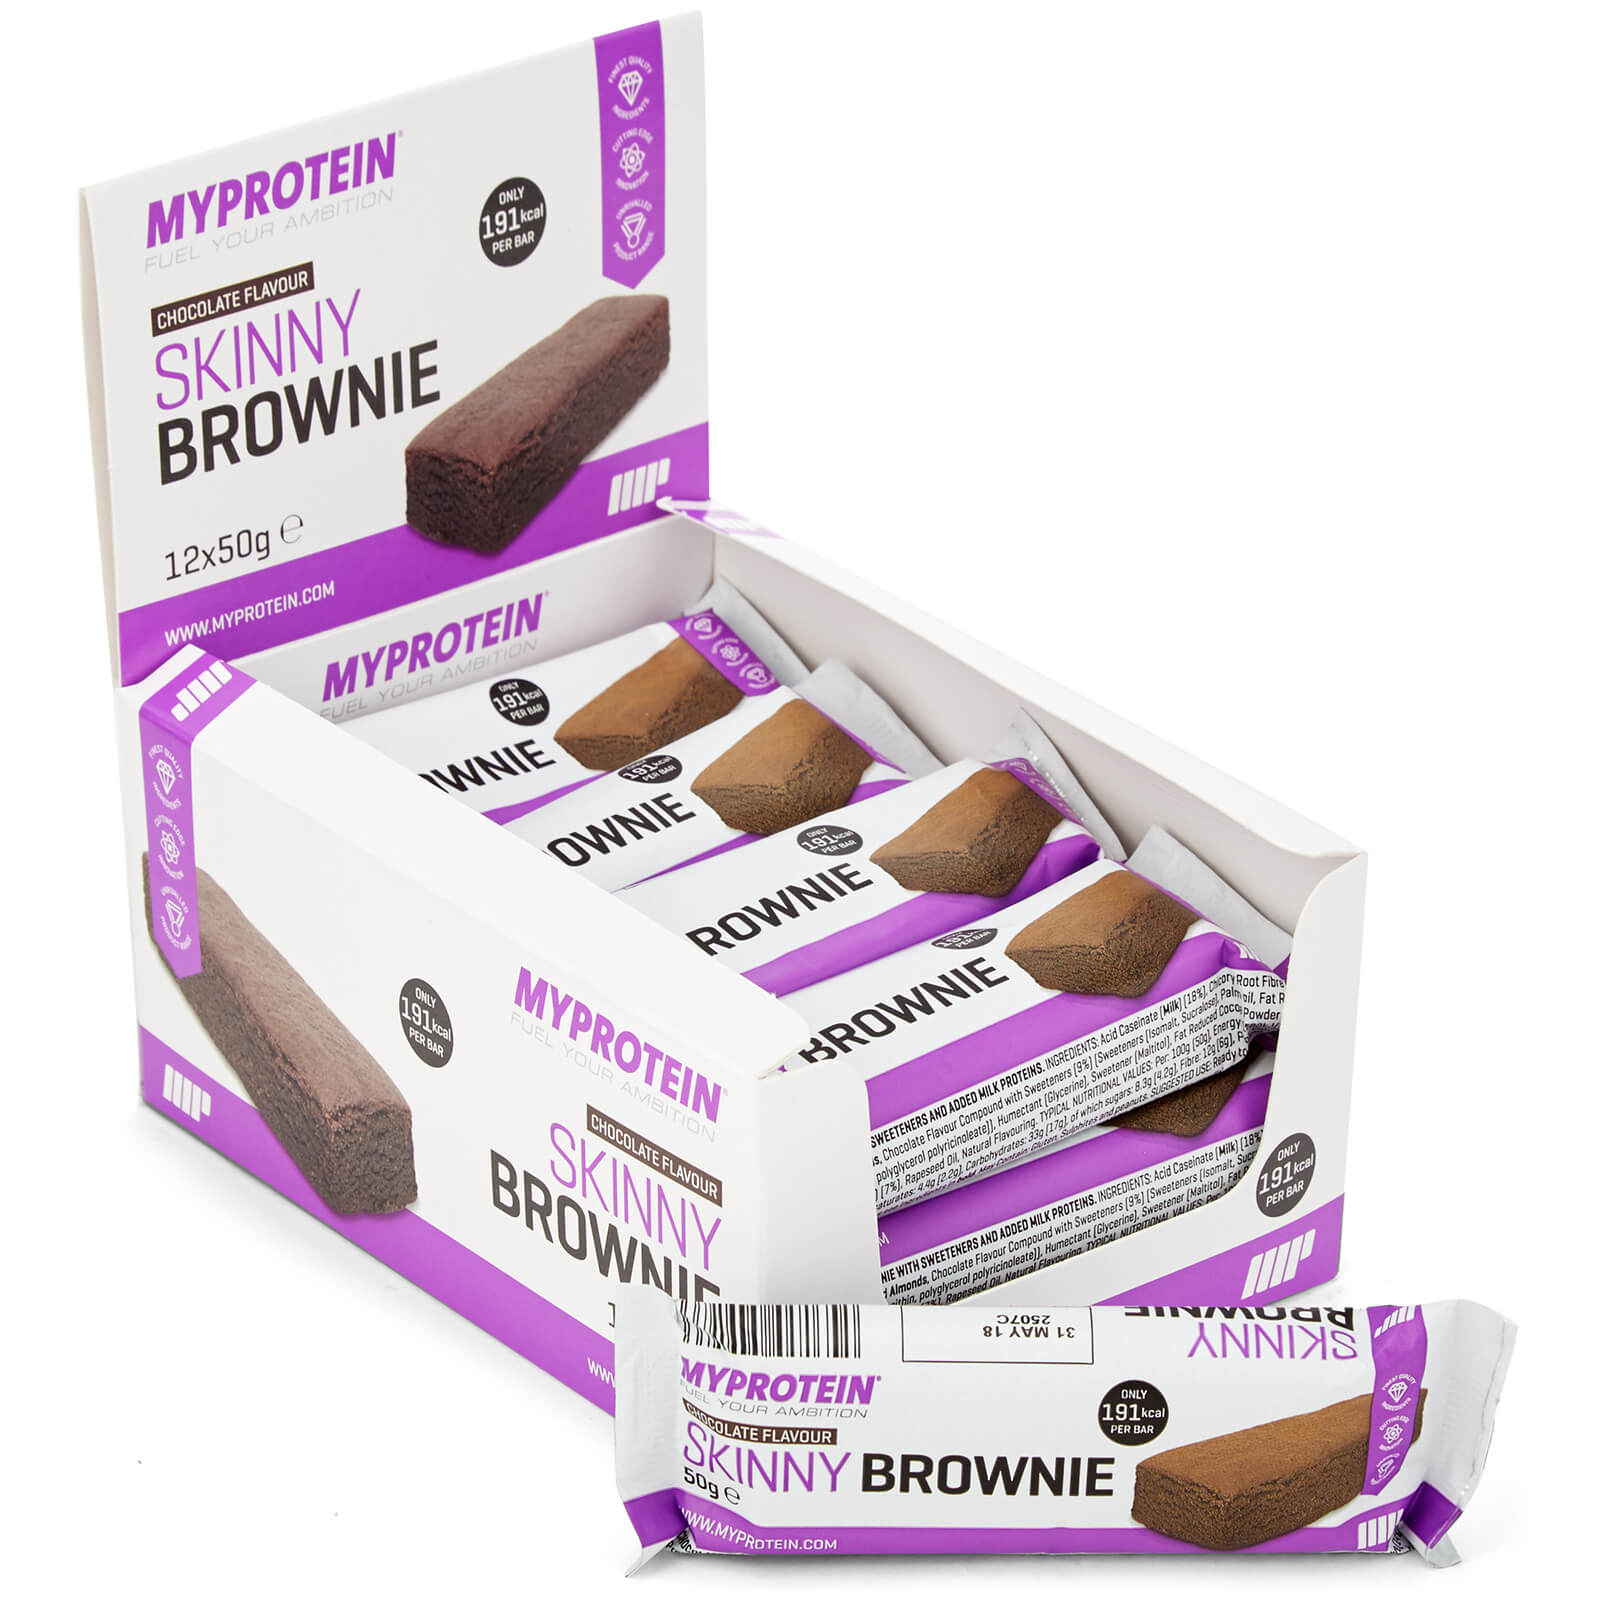 Skinny Brownie, Chocolate, 12 x 50g